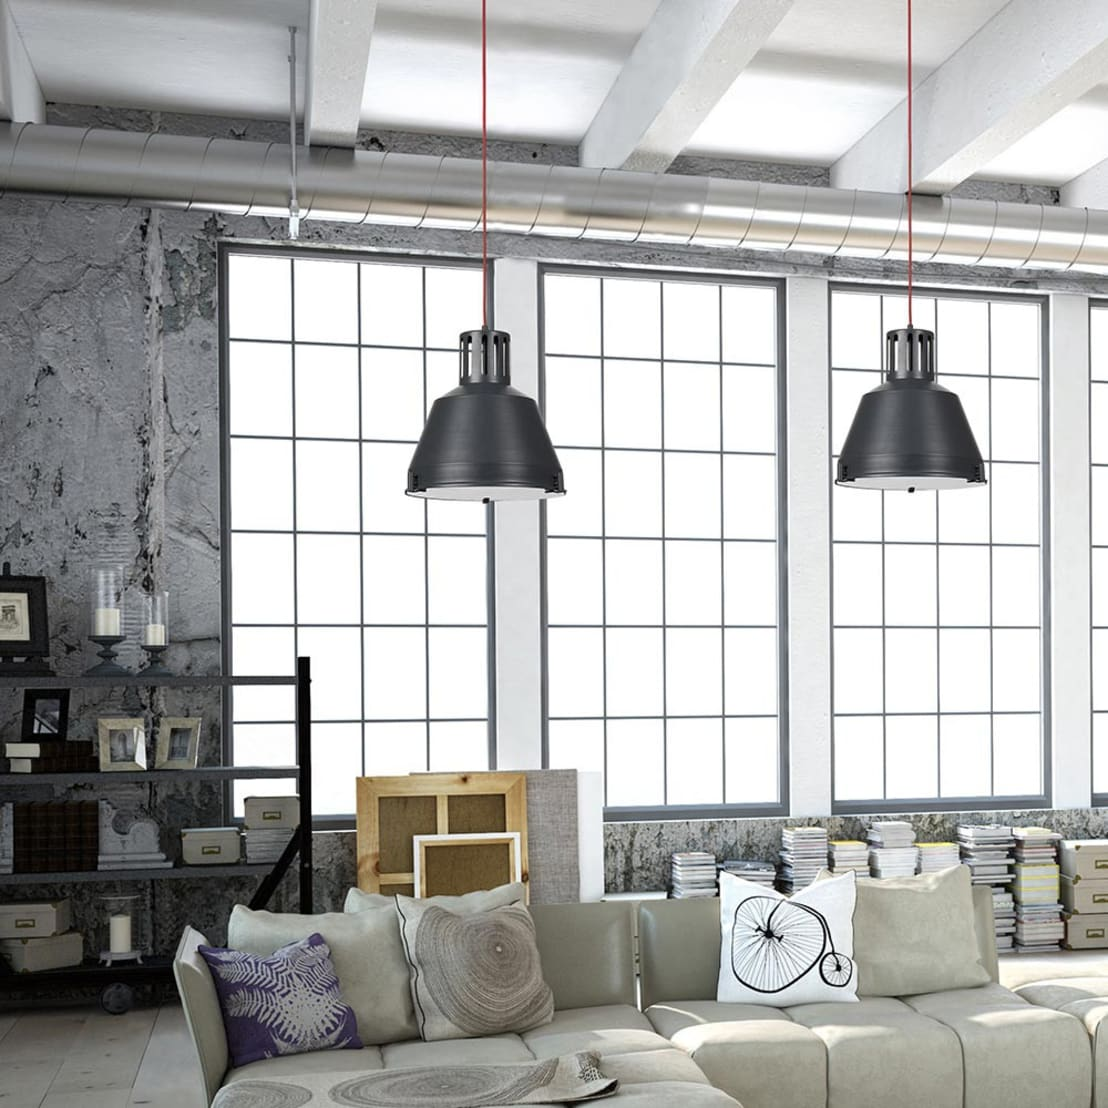 indust m pendelleuchte 33 cm im industrial stil. Black Bedroom Furniture Sets. Home Design Ideas